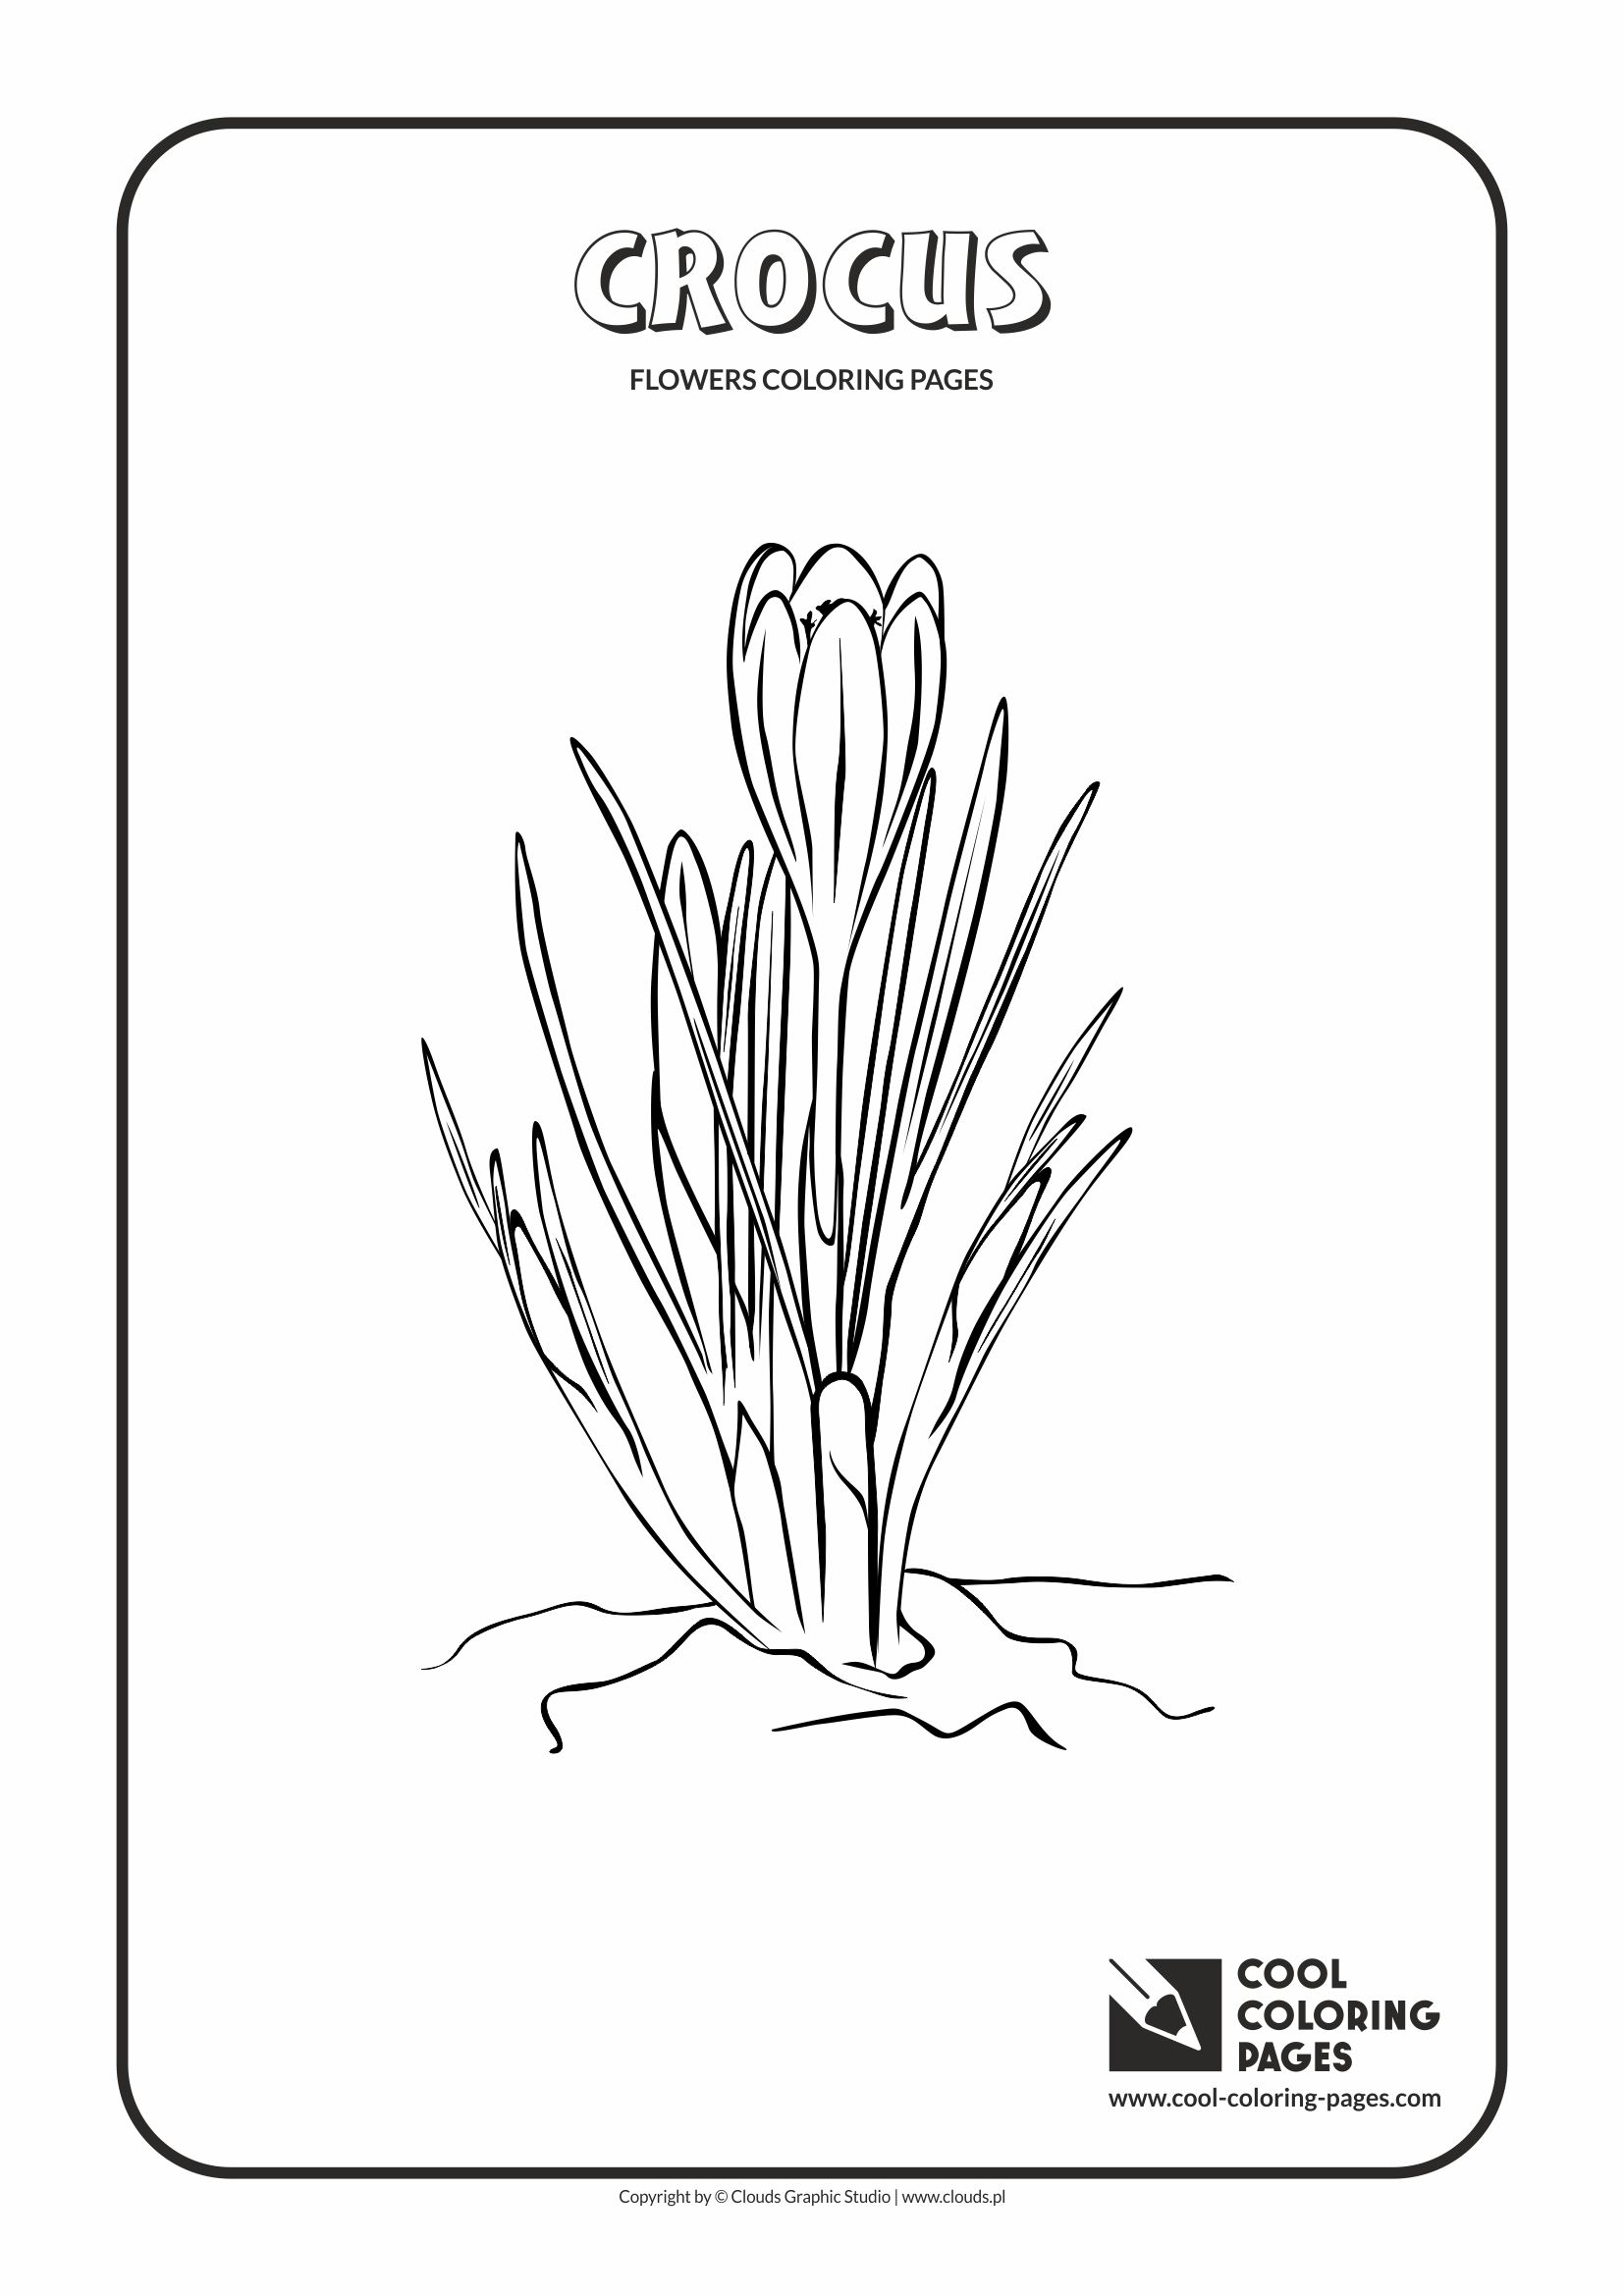 Cool Coloring Pages - Plants / Crocus / Coloring page with crocus